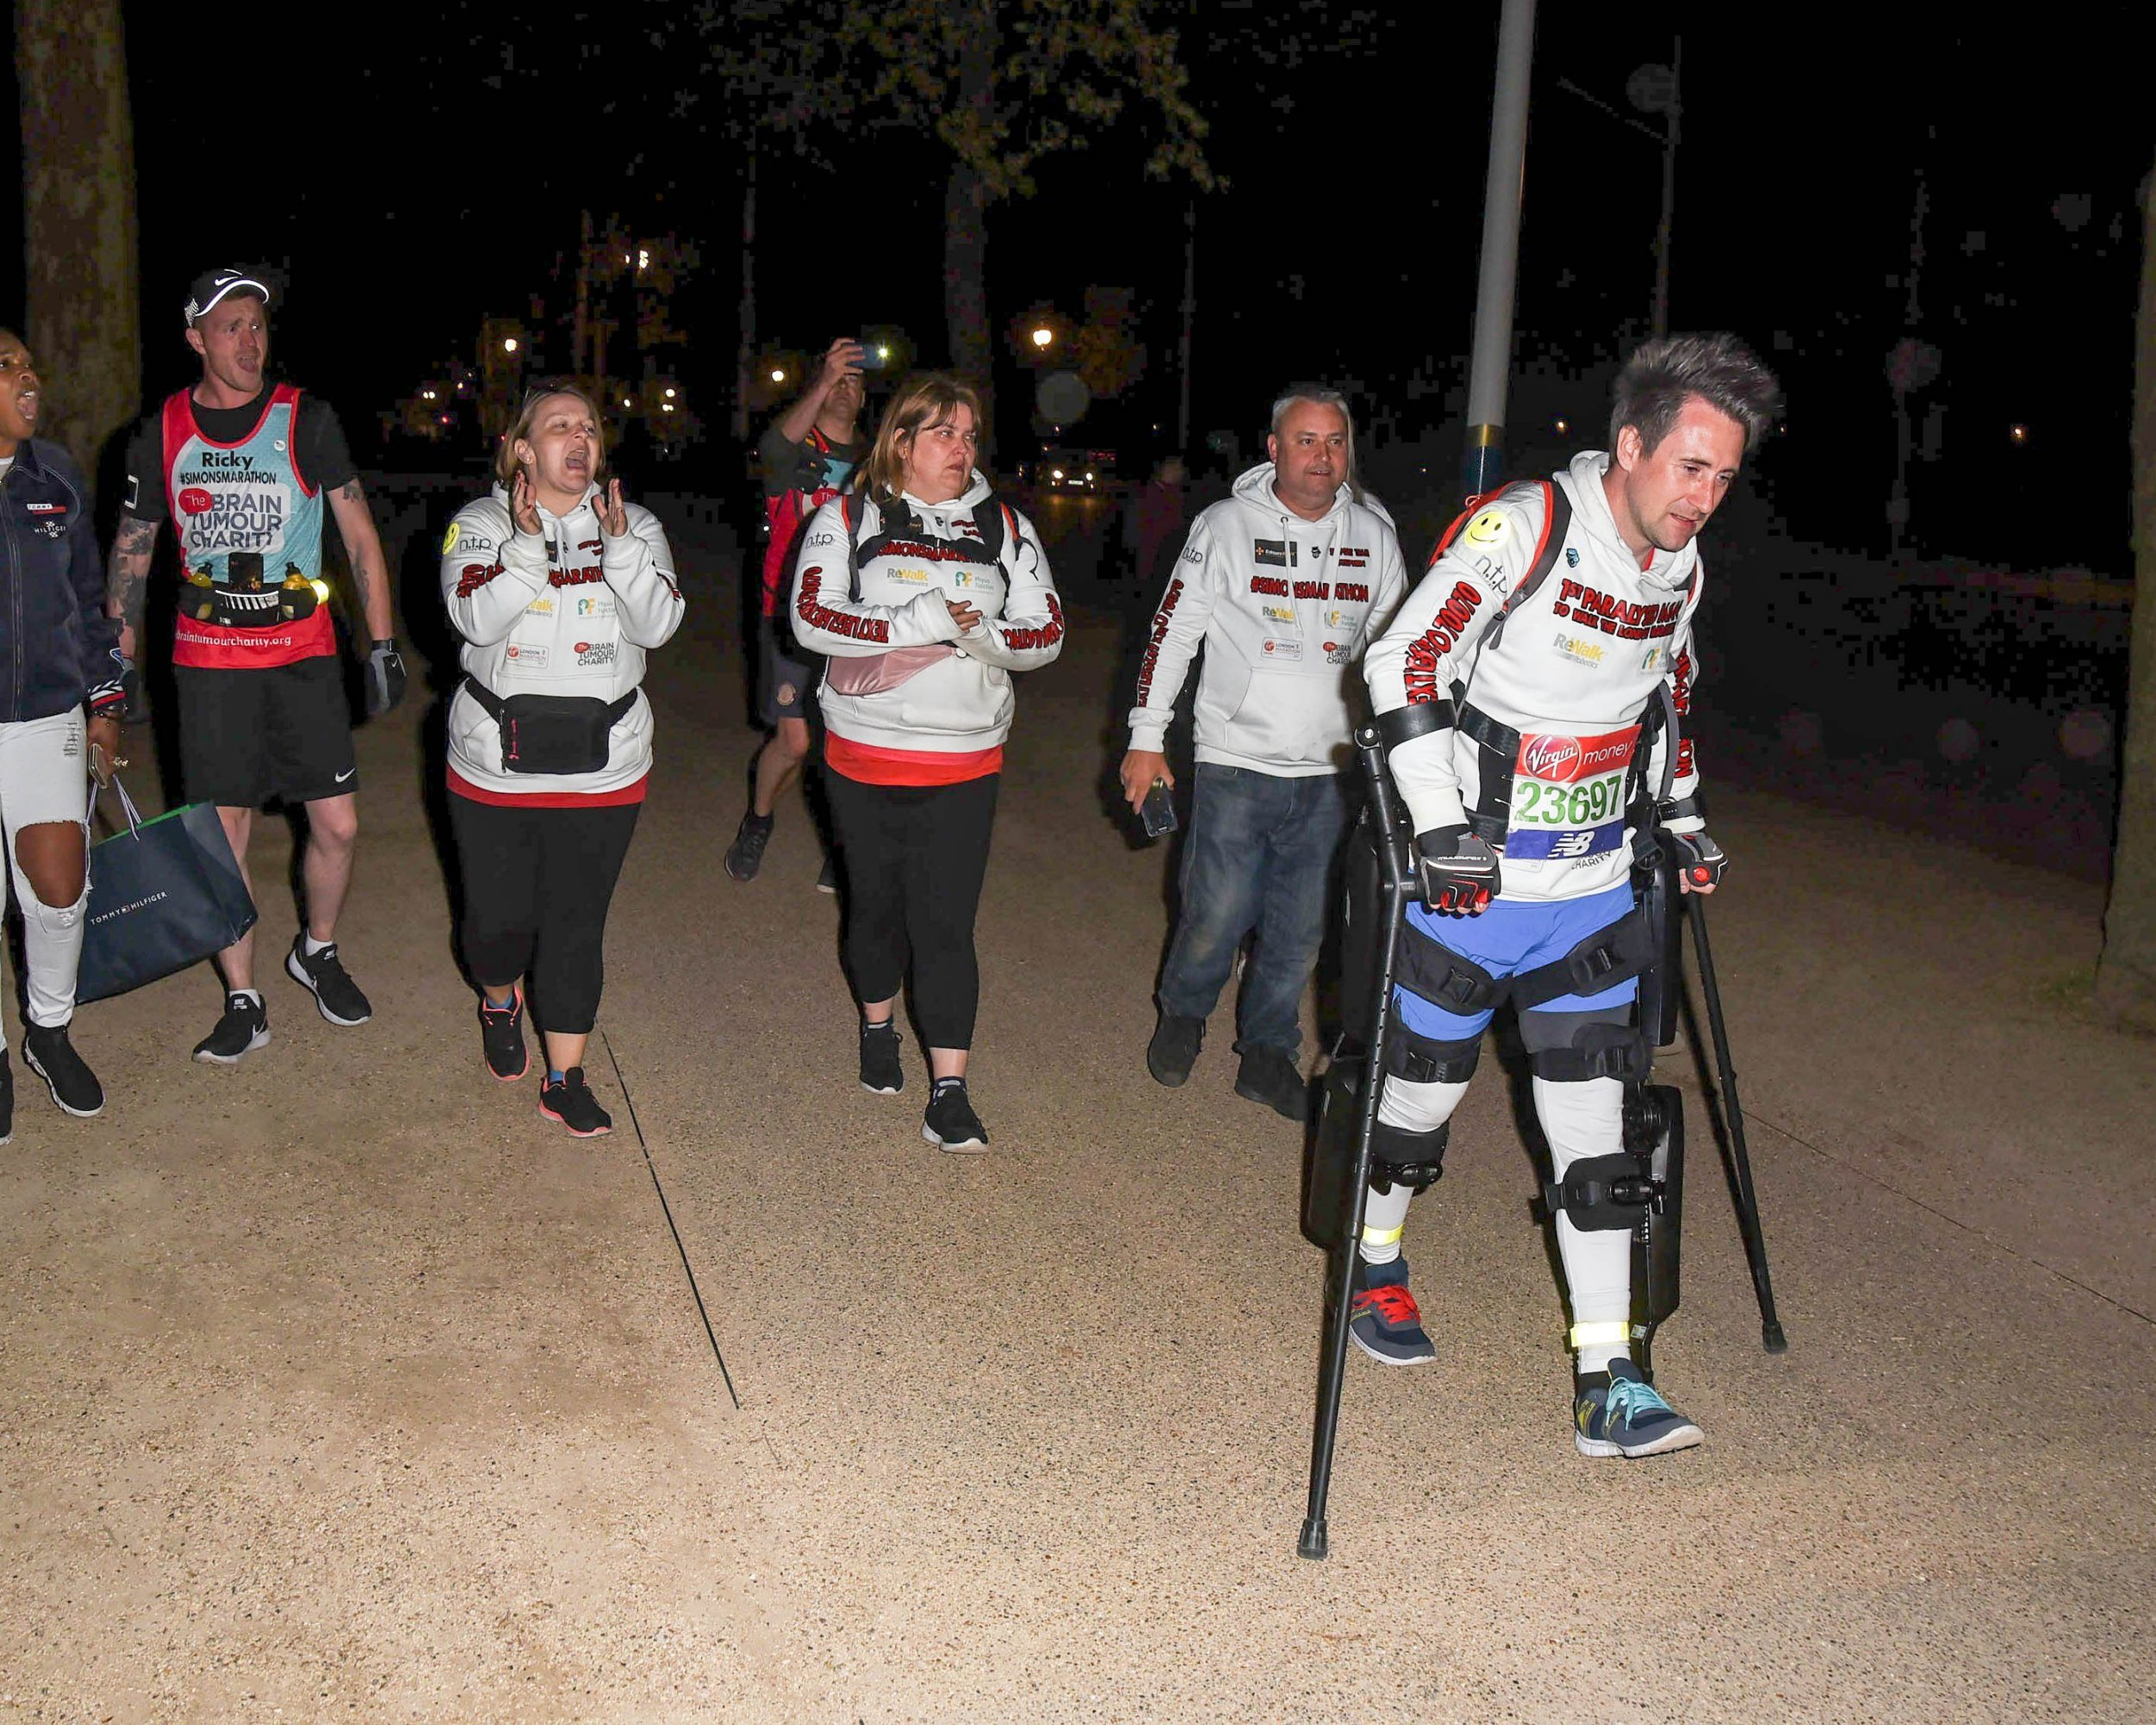 Picture Shows: Simon Kindleysides April 23, 2018 Simon Kindleysides The last runner to finish the London Marathon in London, England. He is the first paralysed man to walk the London Marathon and uses a special exoskeleton. He completed the race at 10:46 pm. Due to finishing the day after the marathon he was refused a medal so was donated some medals from wellwishers. Non-Exclusive WORLDWIDE RIGHTS Pictures by : Flynet Pictures ? 2018 Tel : +44 (0)20 3551 5049 Email : info@flynetpictures.co.uk